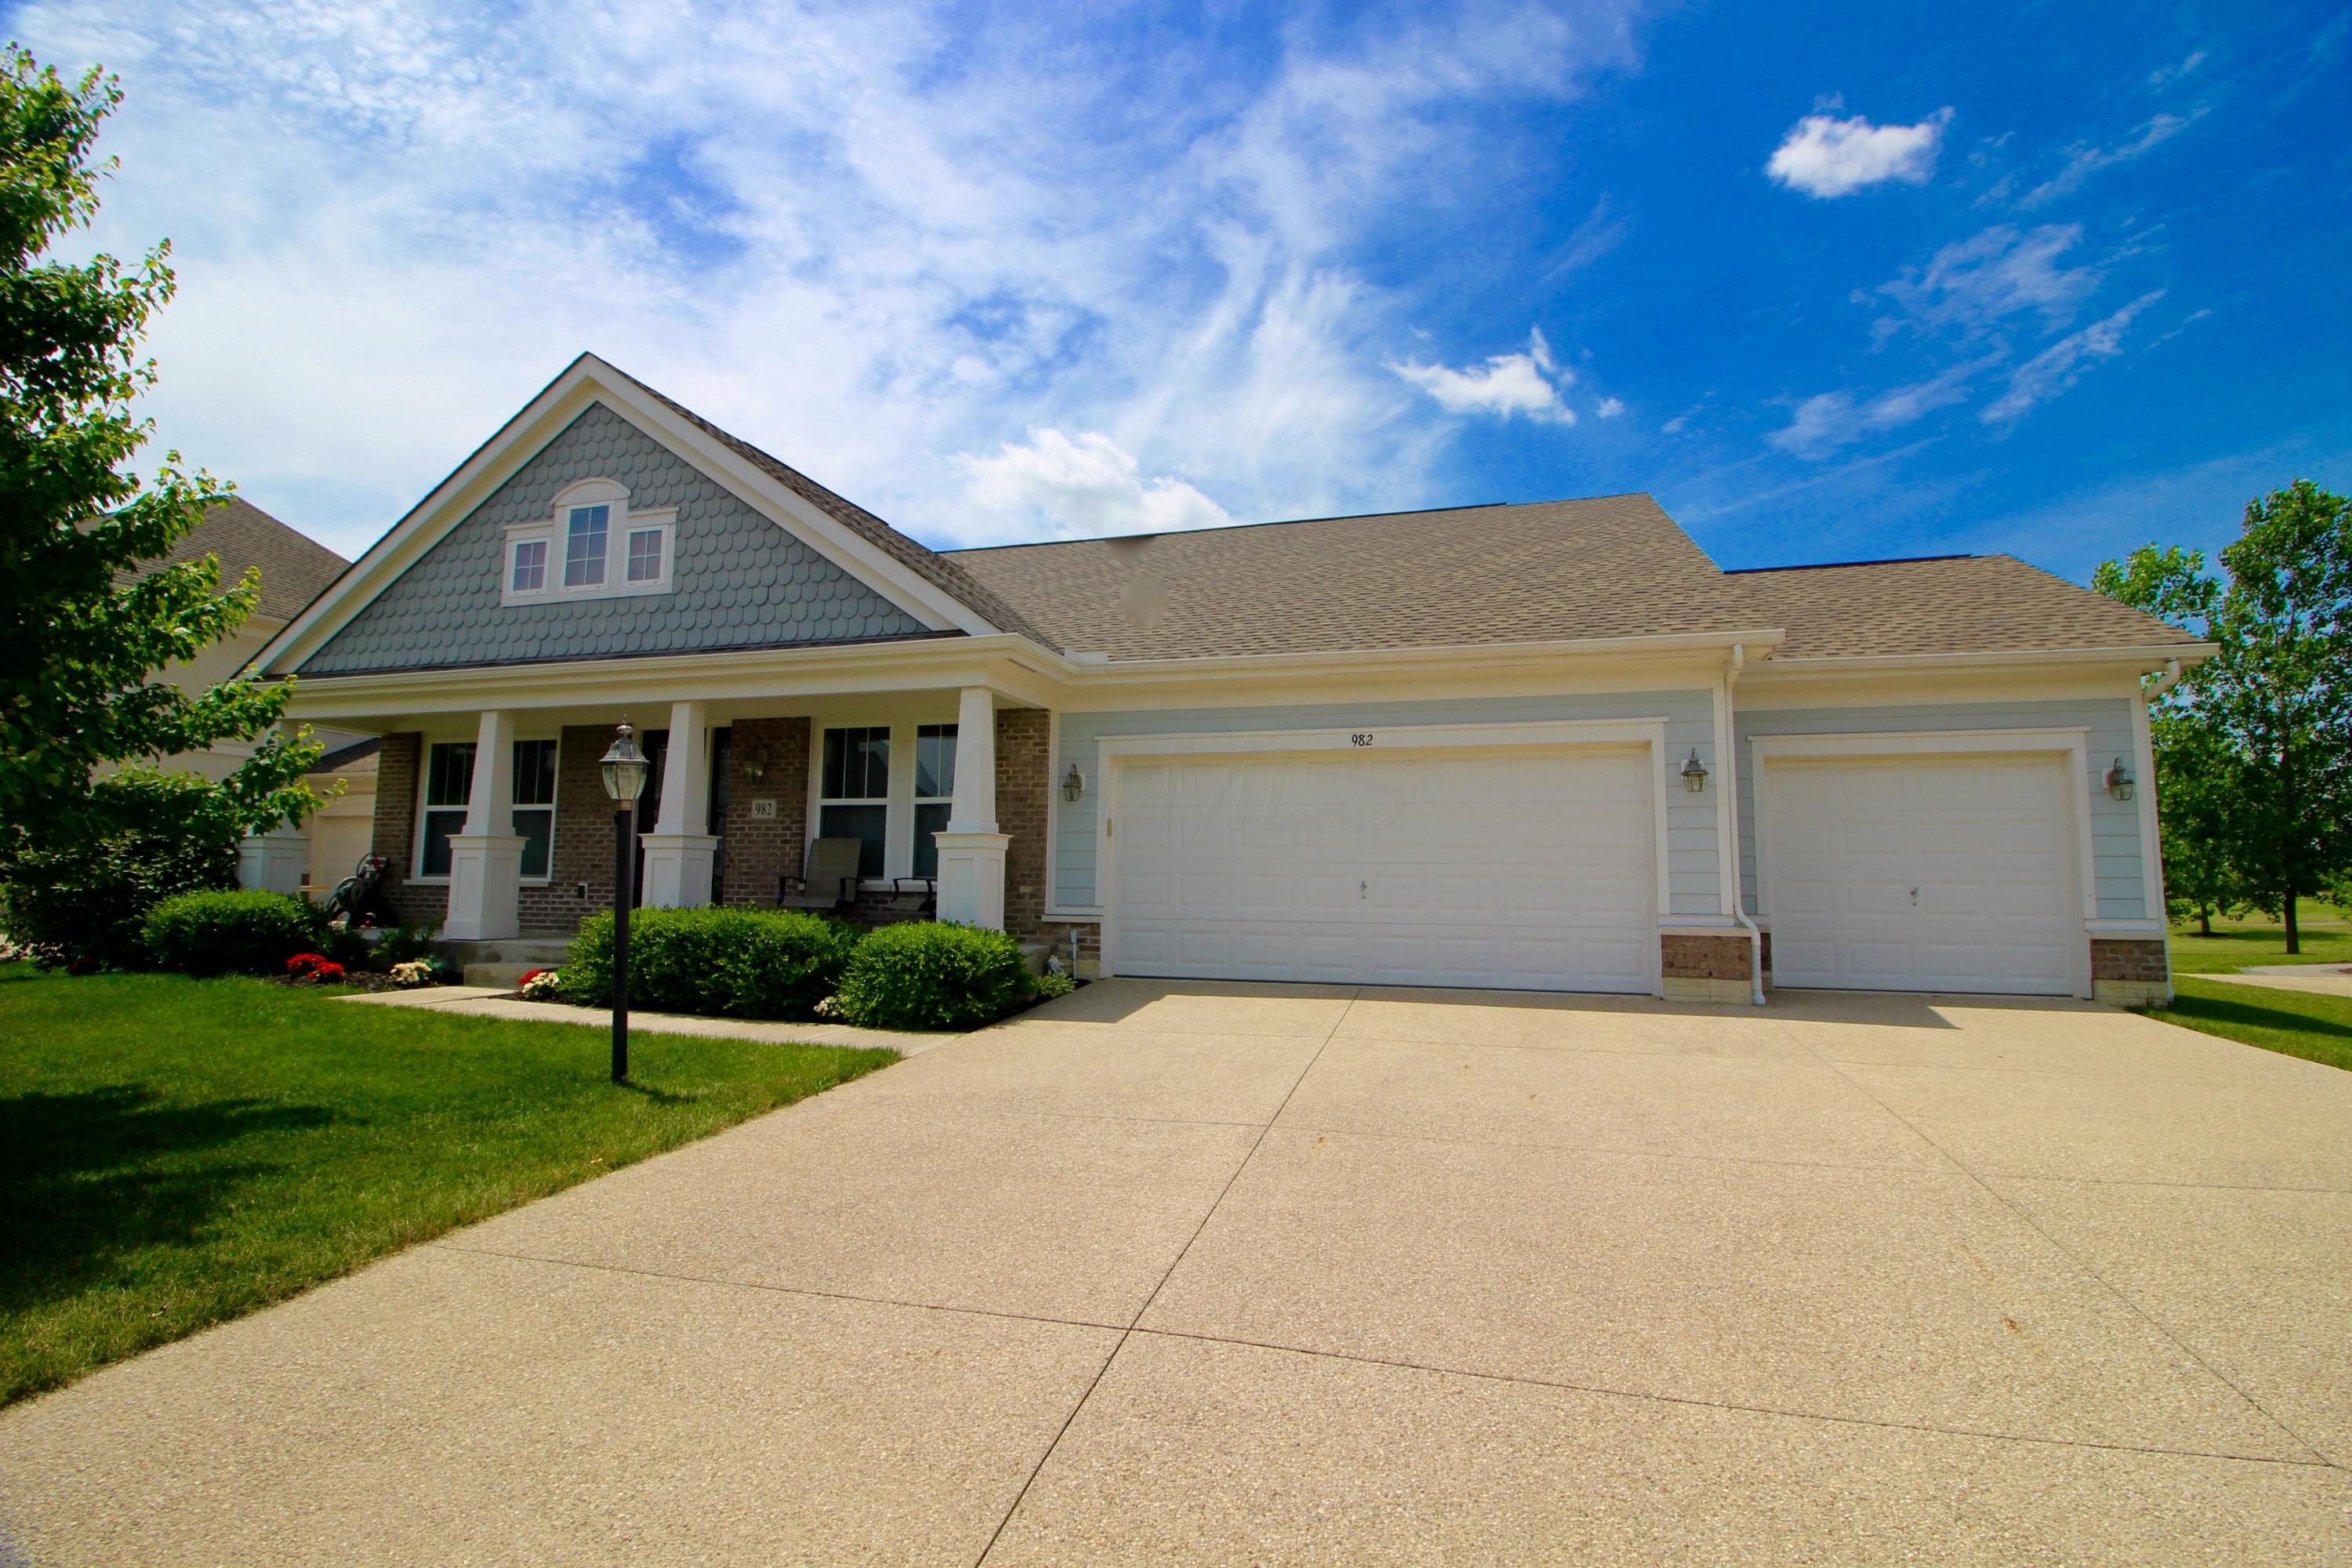 982 Ballater Drive, Delaware, Ohio 43015, 3 Bedrooms Bedrooms, ,3 BathroomsBathrooms,Residential,For Sale,Ballater,220020527